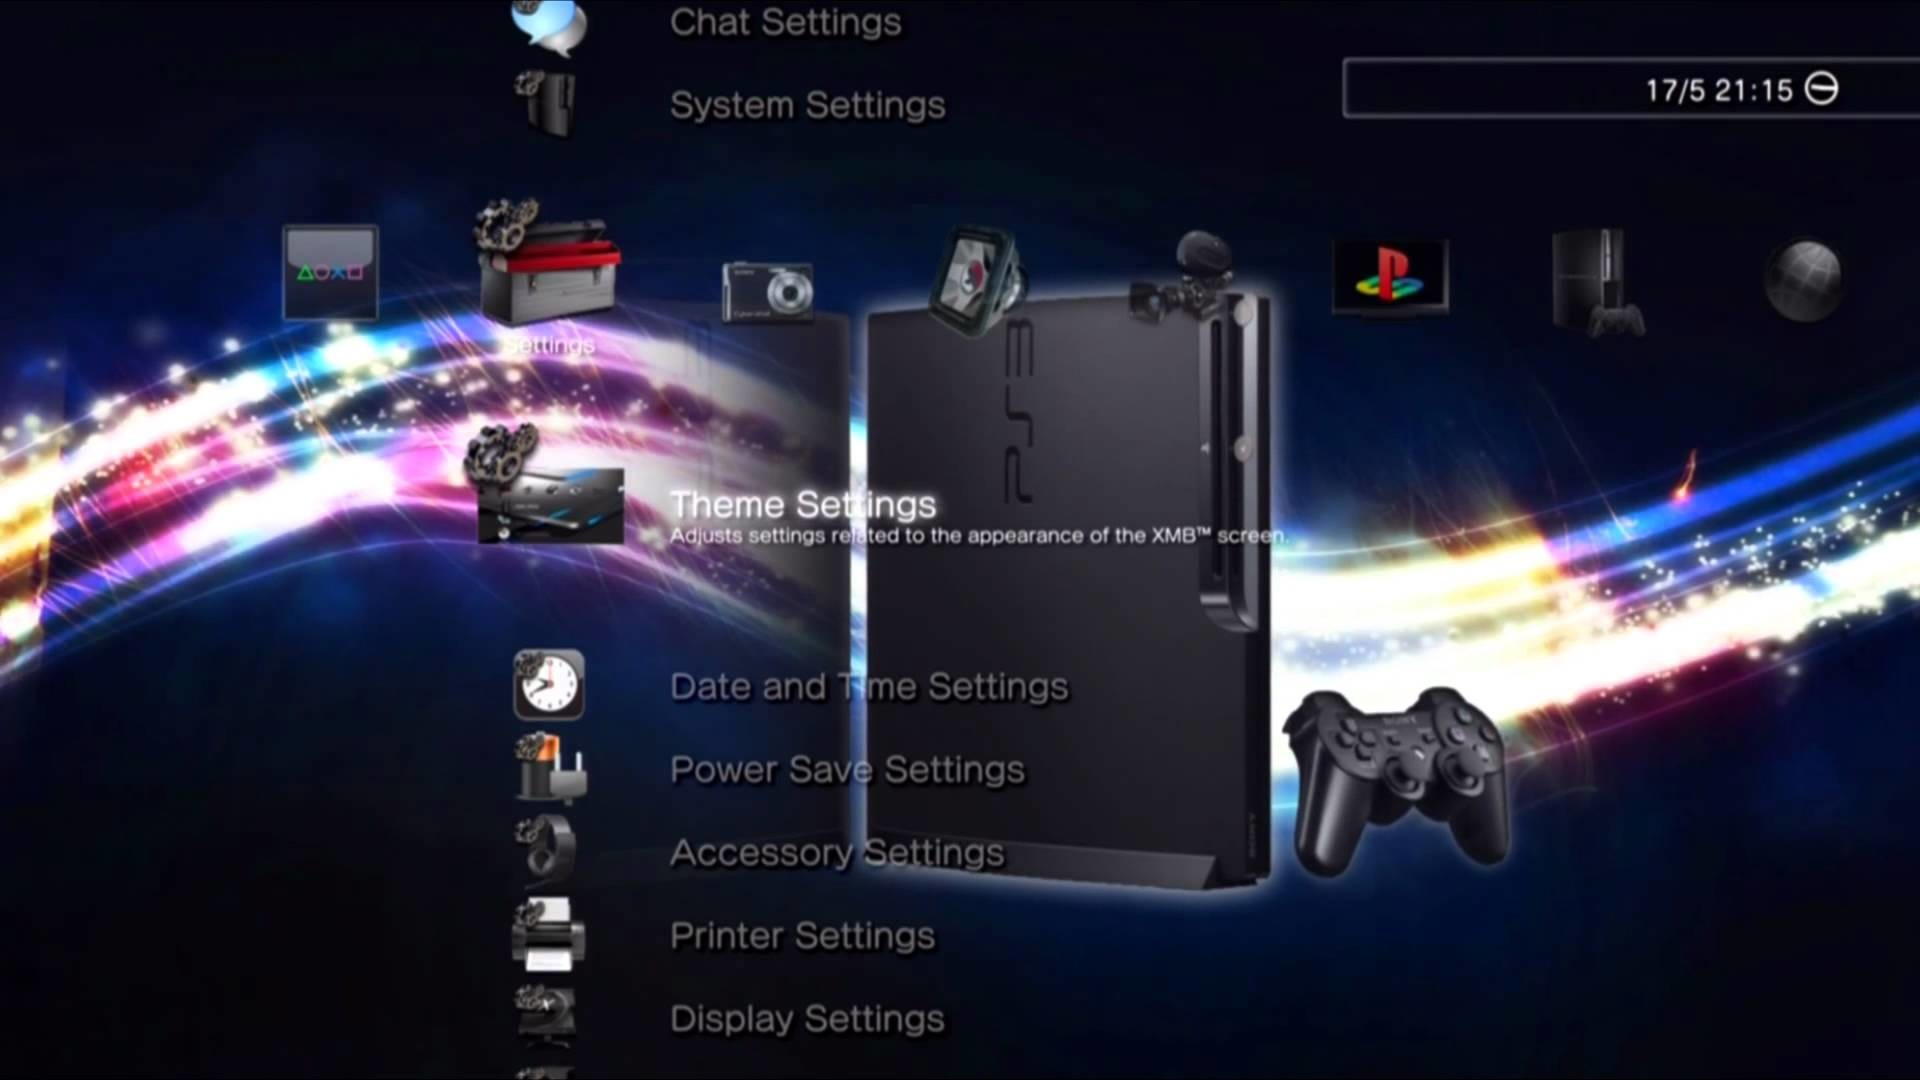 1920x1080 Ps3 Background Themes Images & Pictures - Becuo